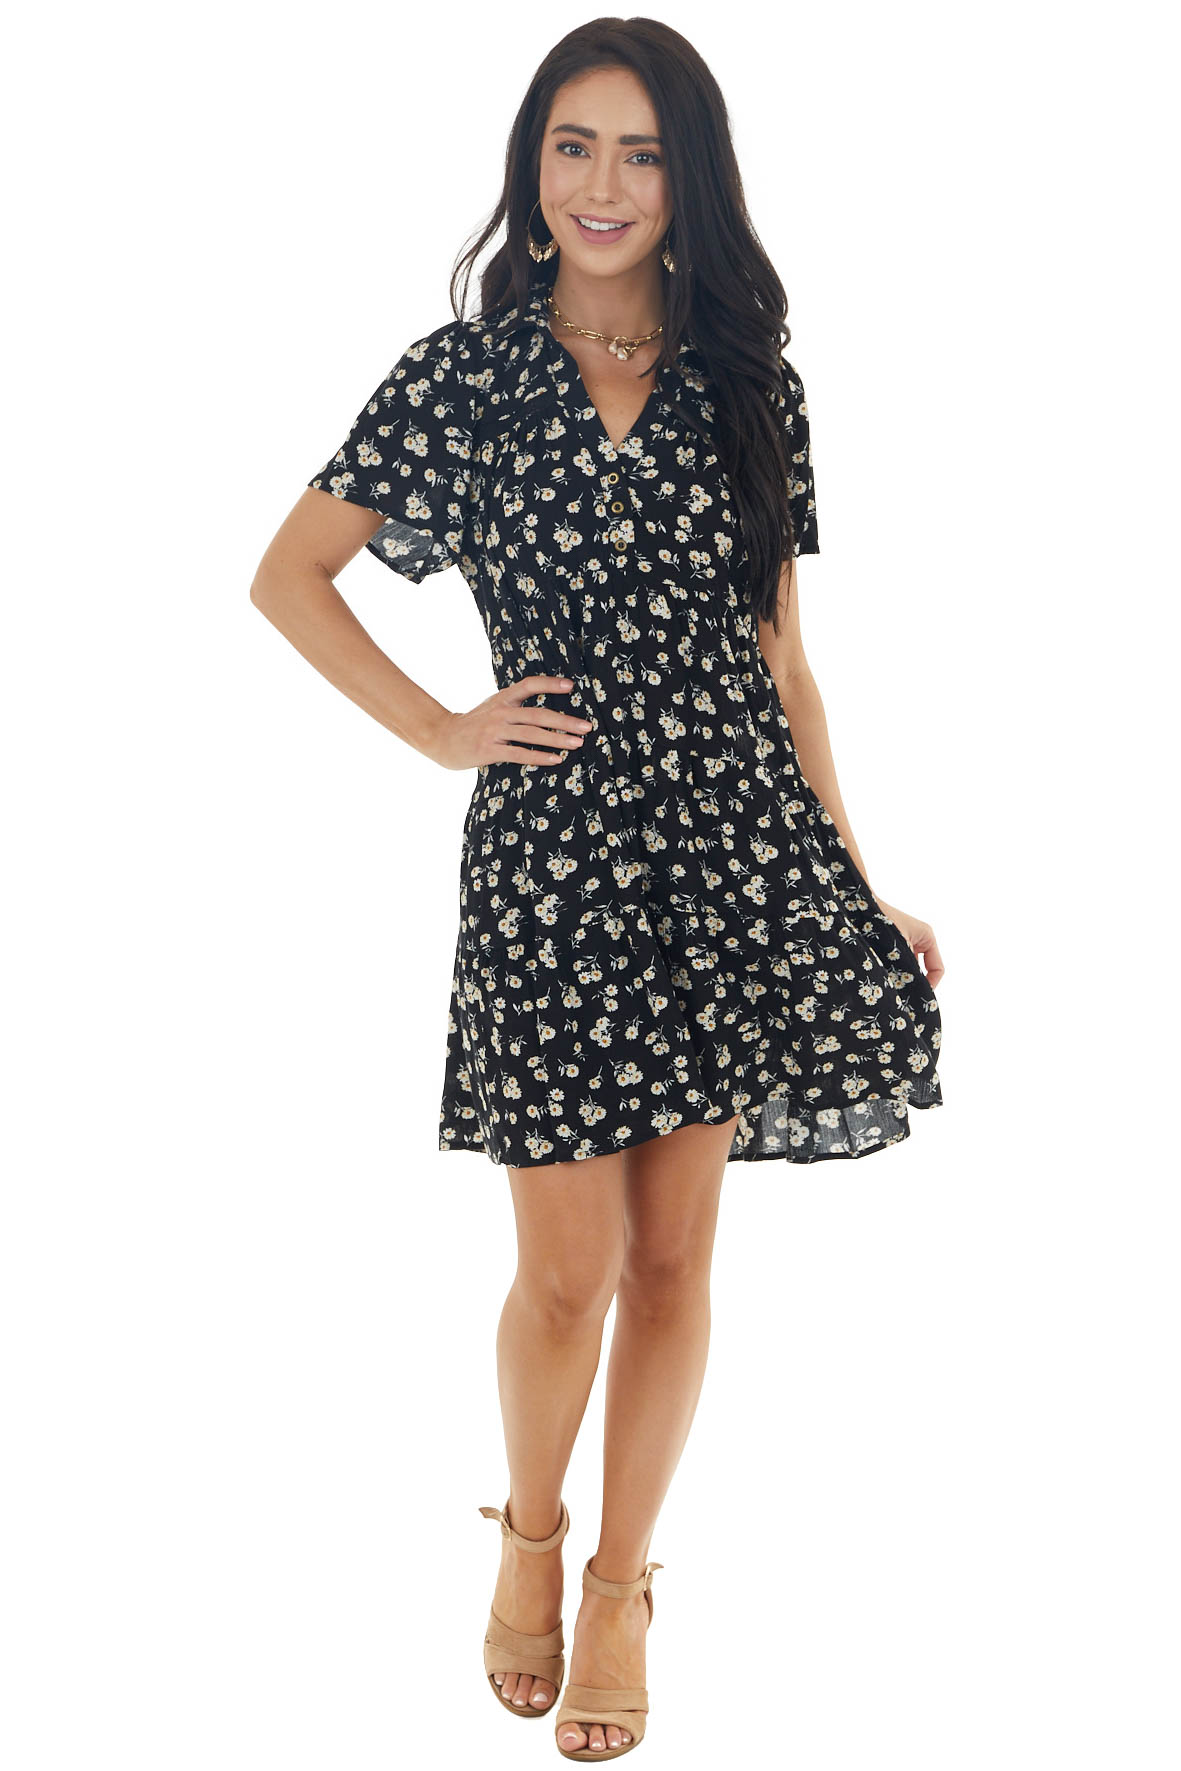 Black Ditsy Floral Tiered Babydoll Short Dress with Collar